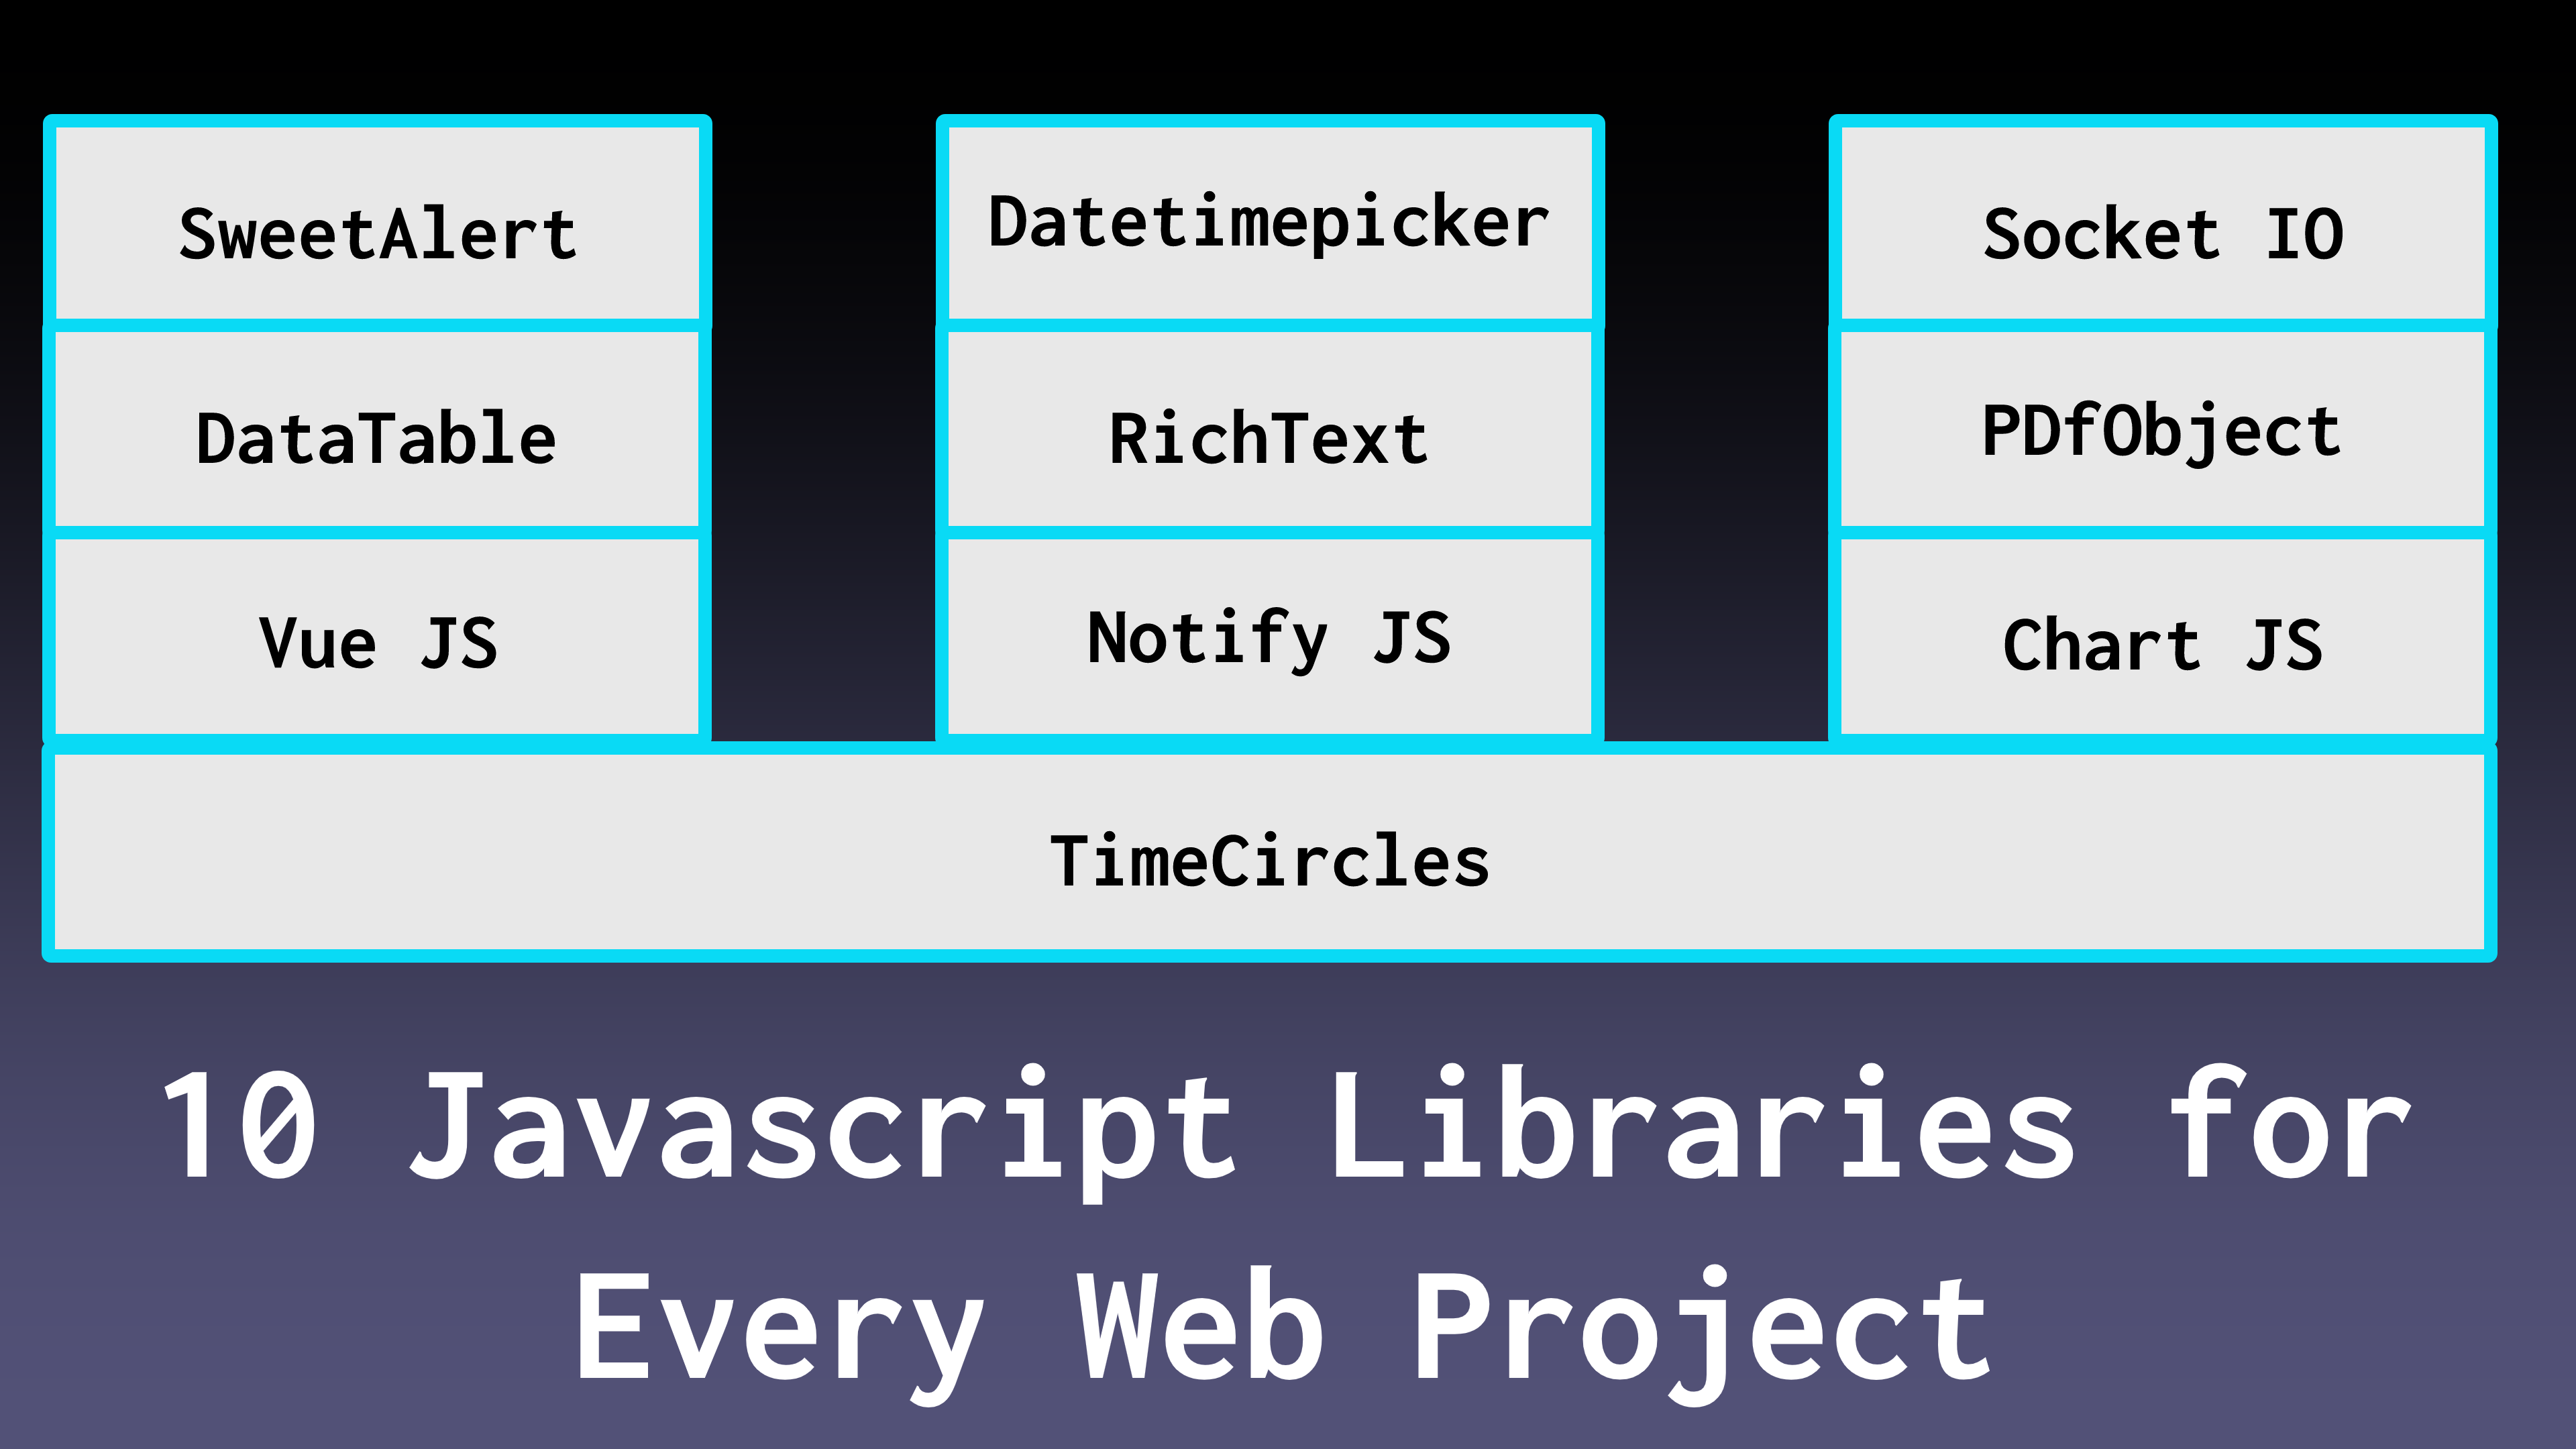 10 Javascript Libraries for Every Web Project